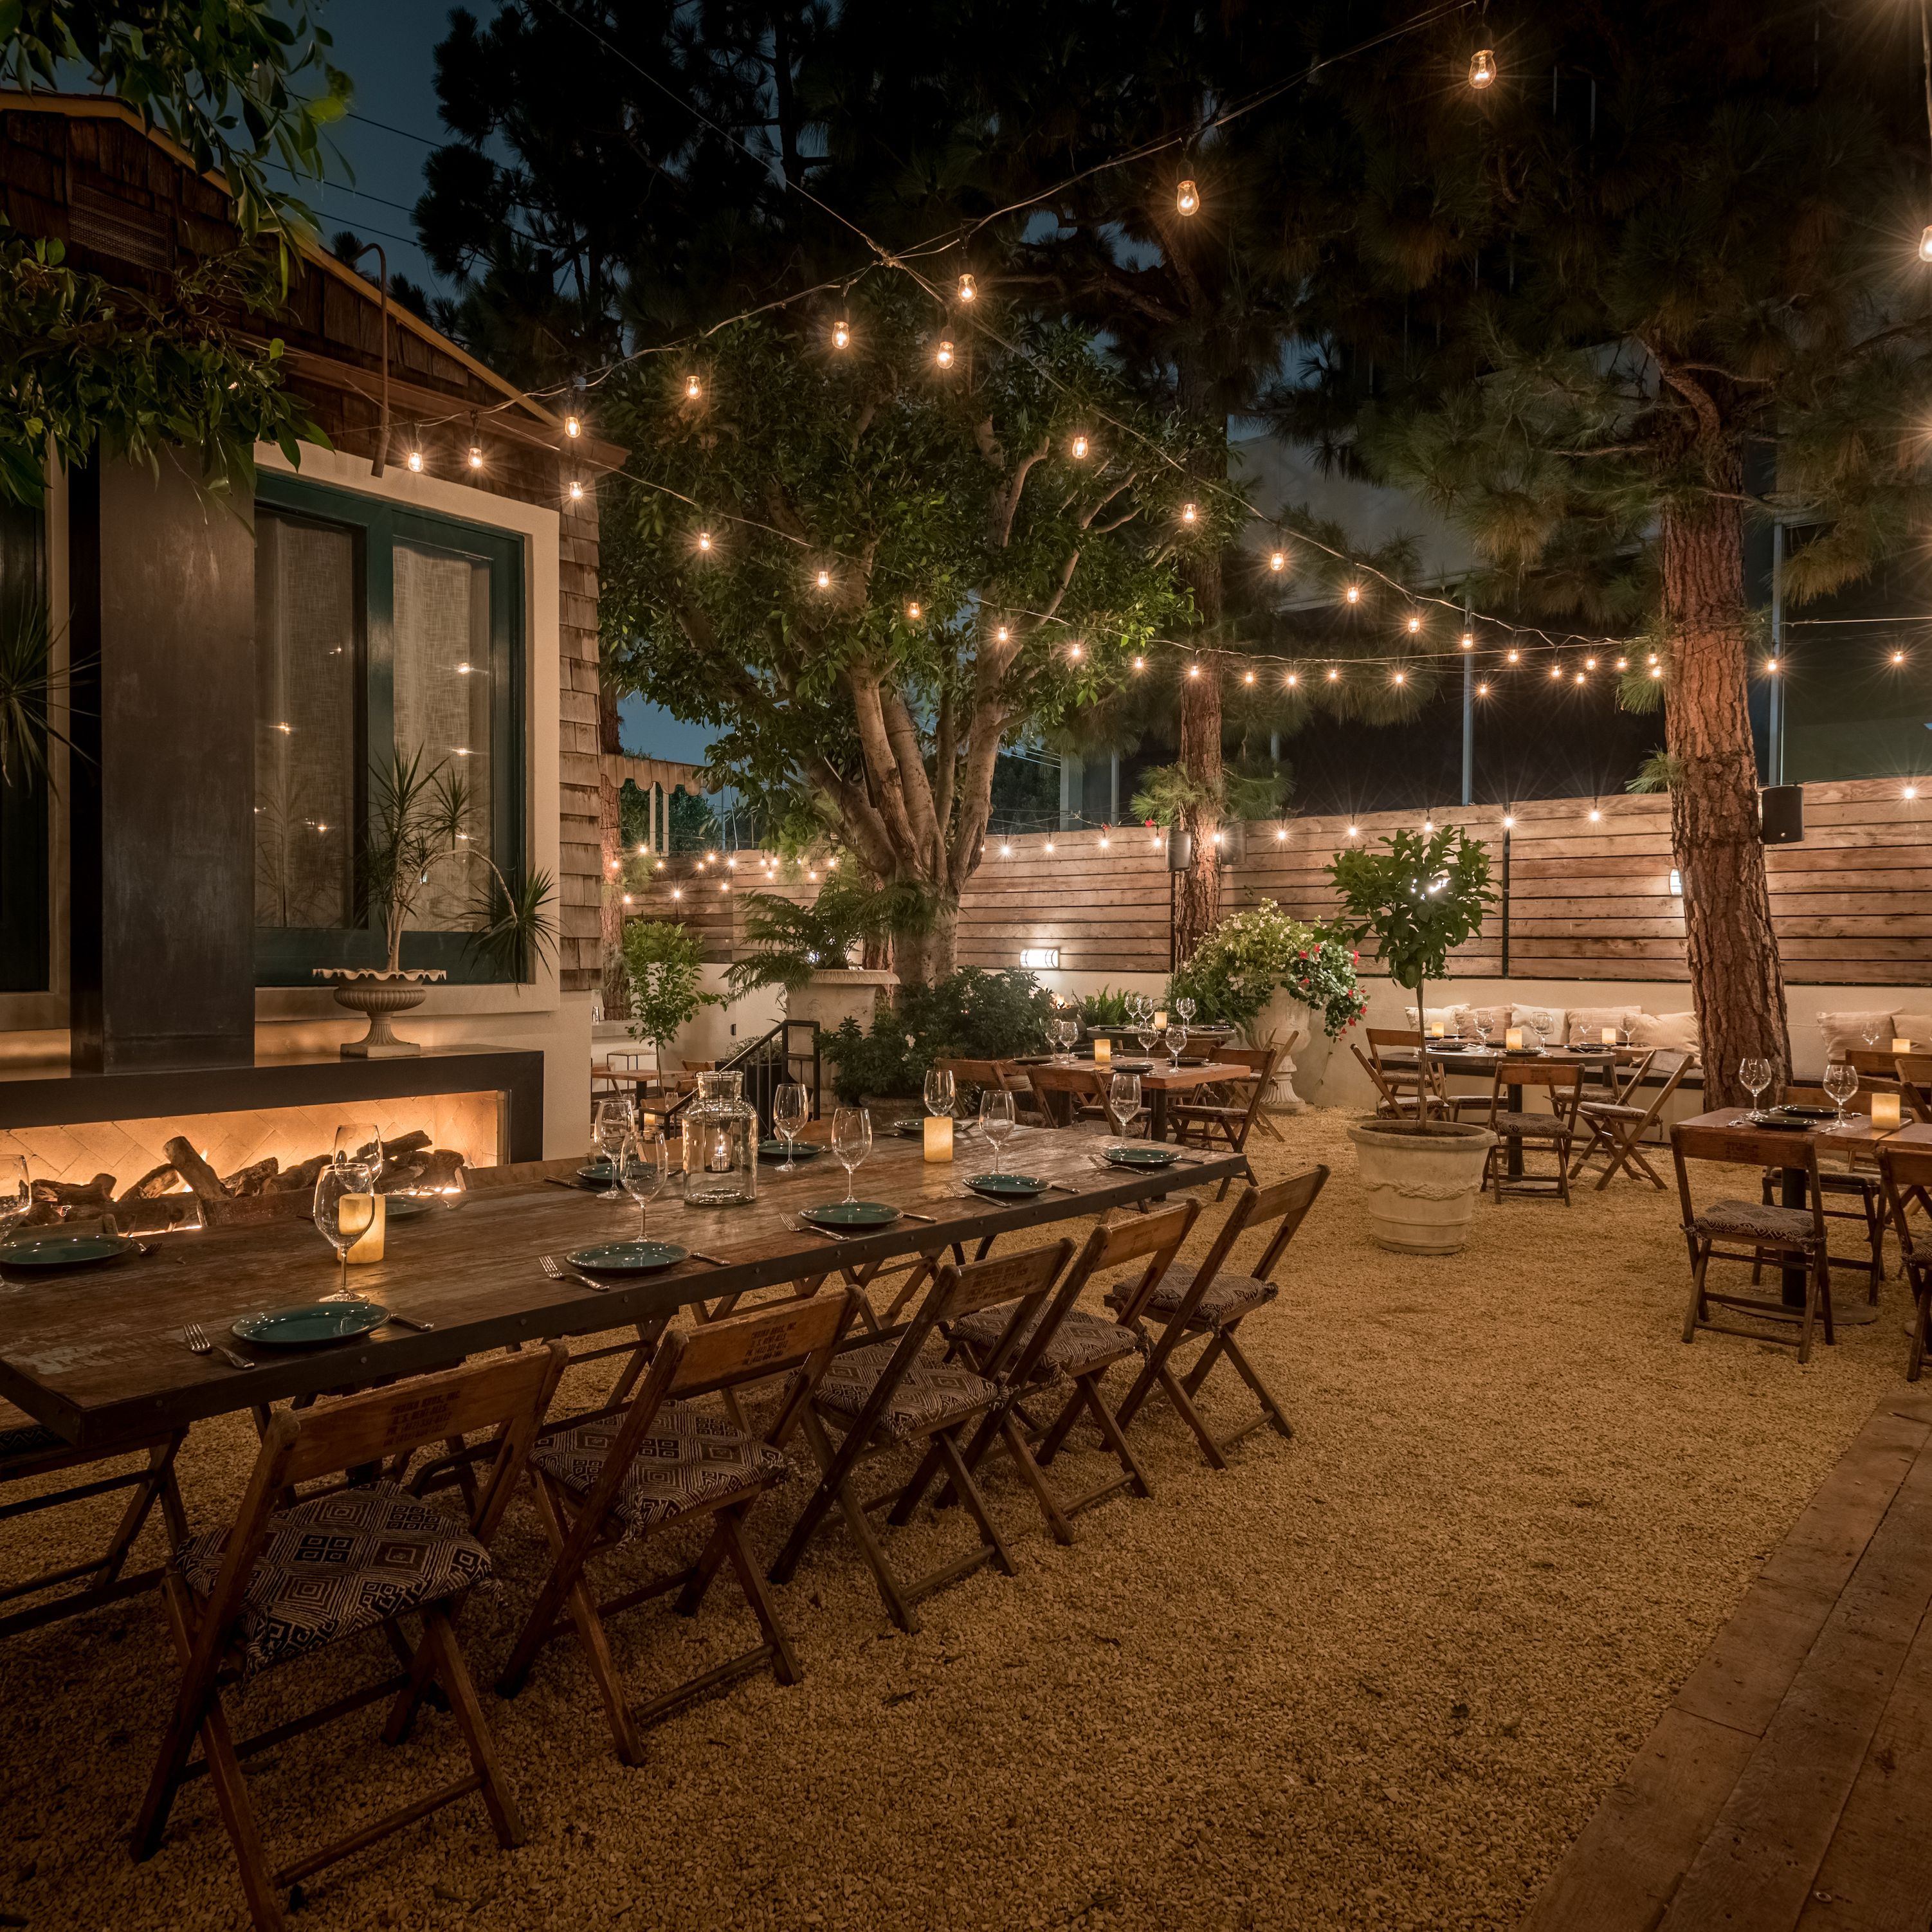 The Top 18 Dining Patios and Rooftops in Los Angeles